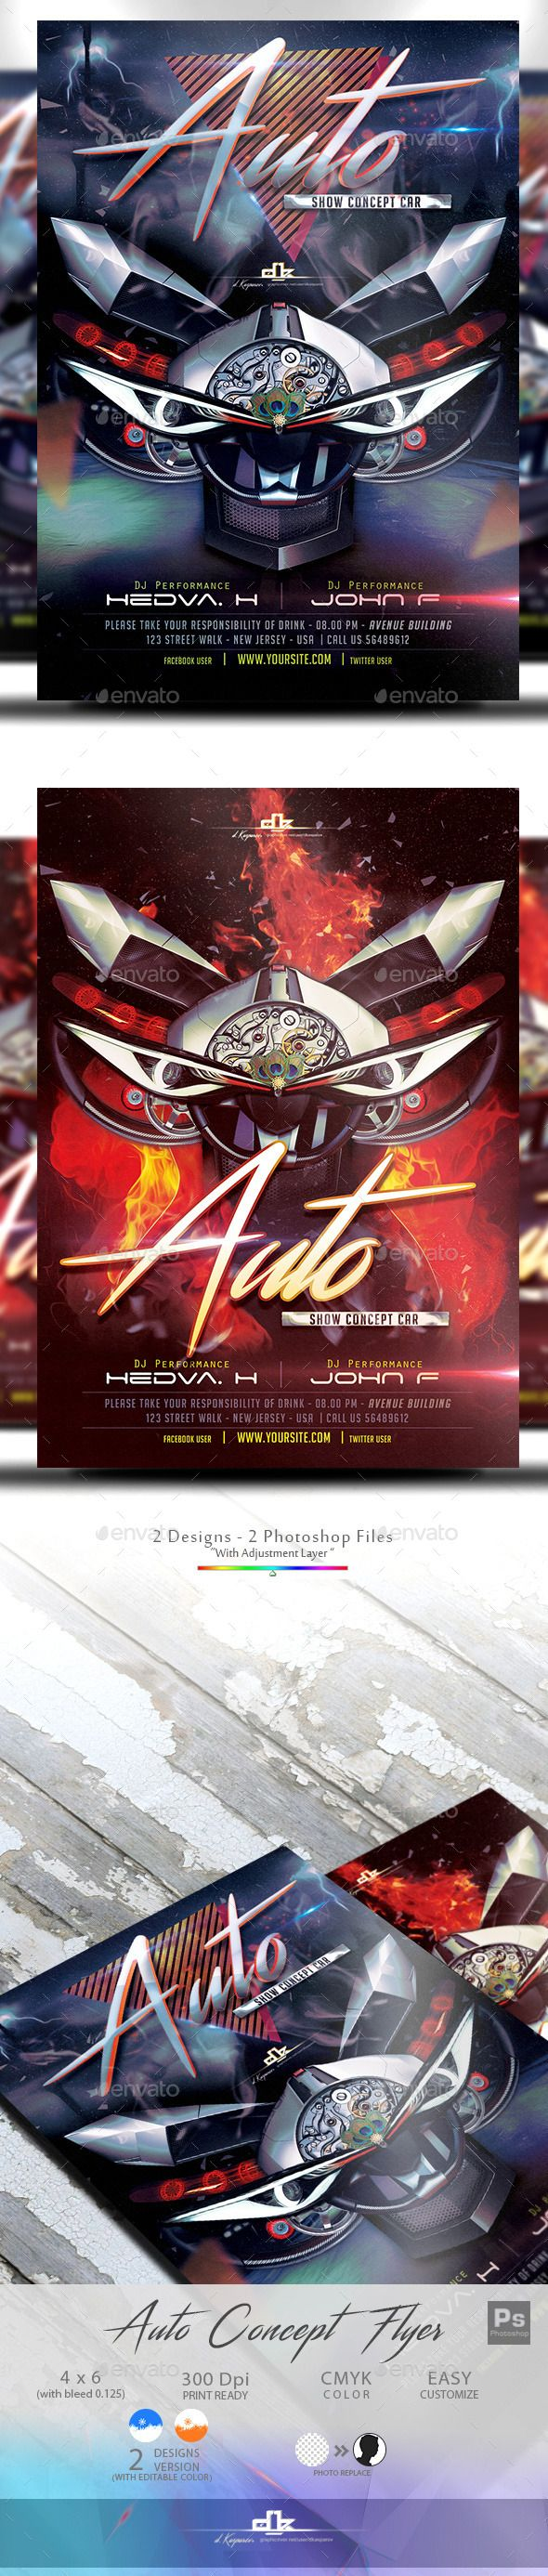 Show Flyer Template 2in1